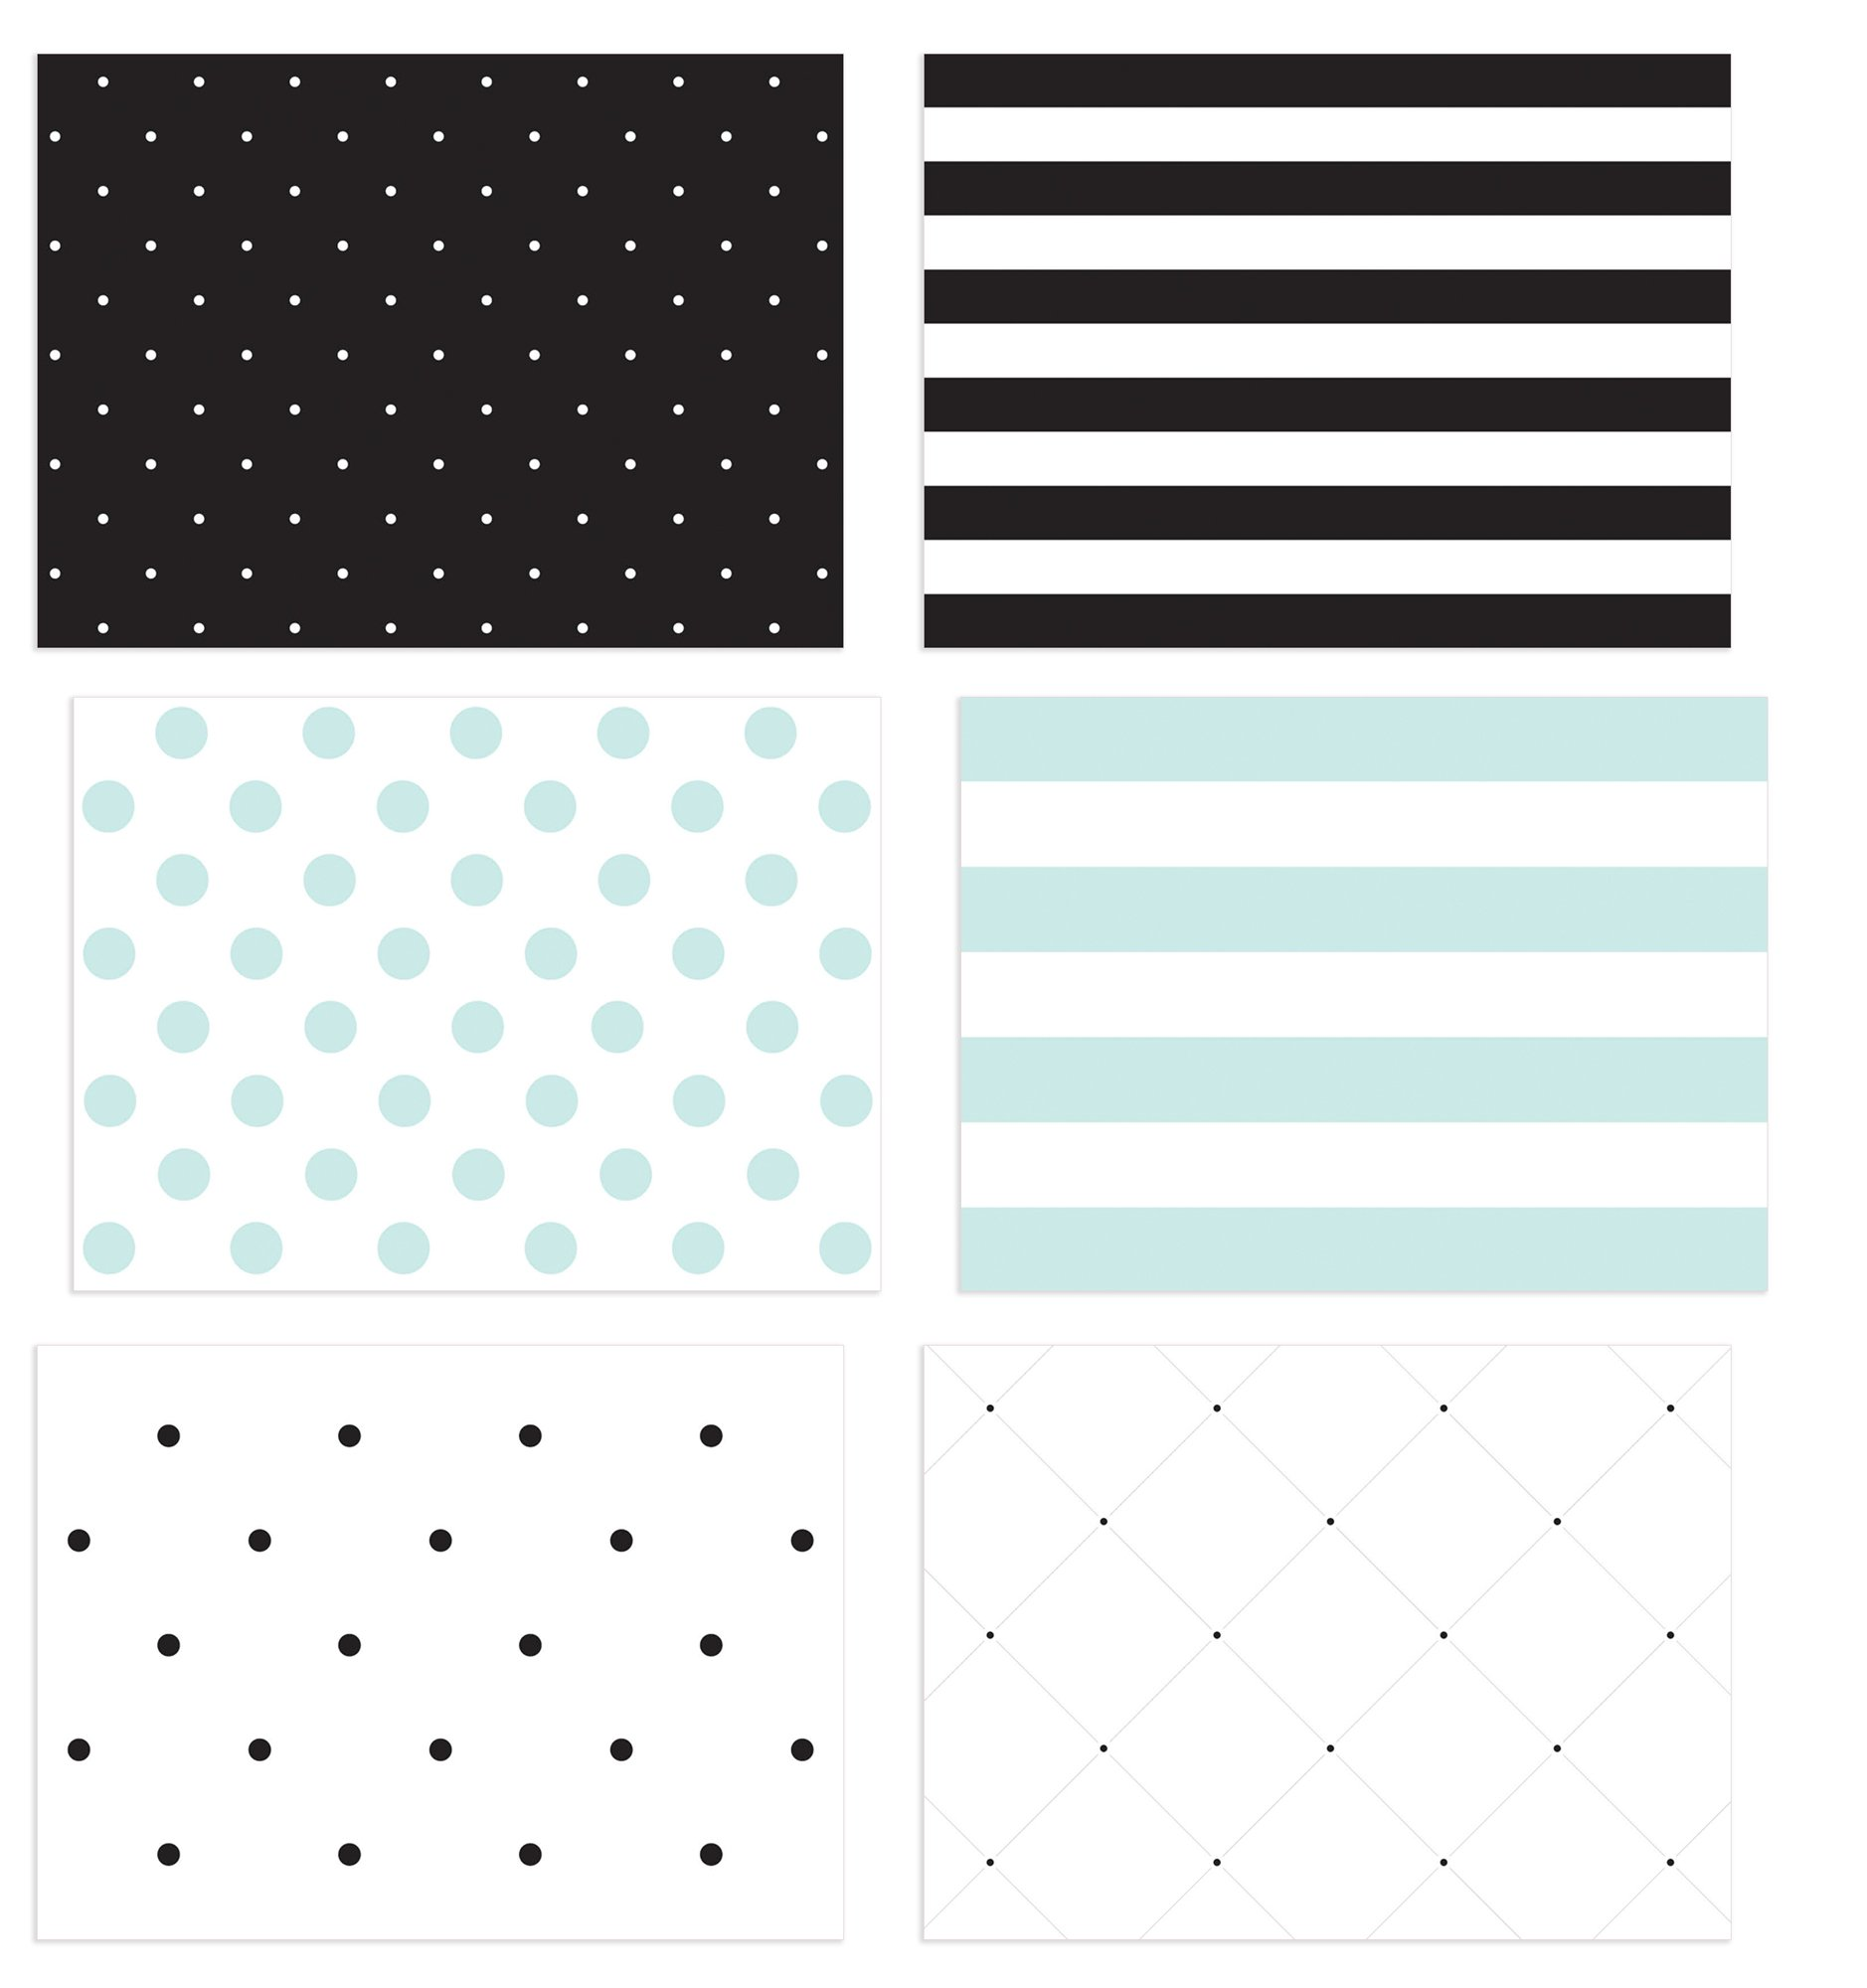 36 Pack Blank Note Cards, 6 All Occasion Polka Dot and Striped Designs, Greeting Card Bulk Box Set, Blue, Black and White Notecards, Blank Note Cards with Envelopes Included, 4.75 x 3.5 Inches